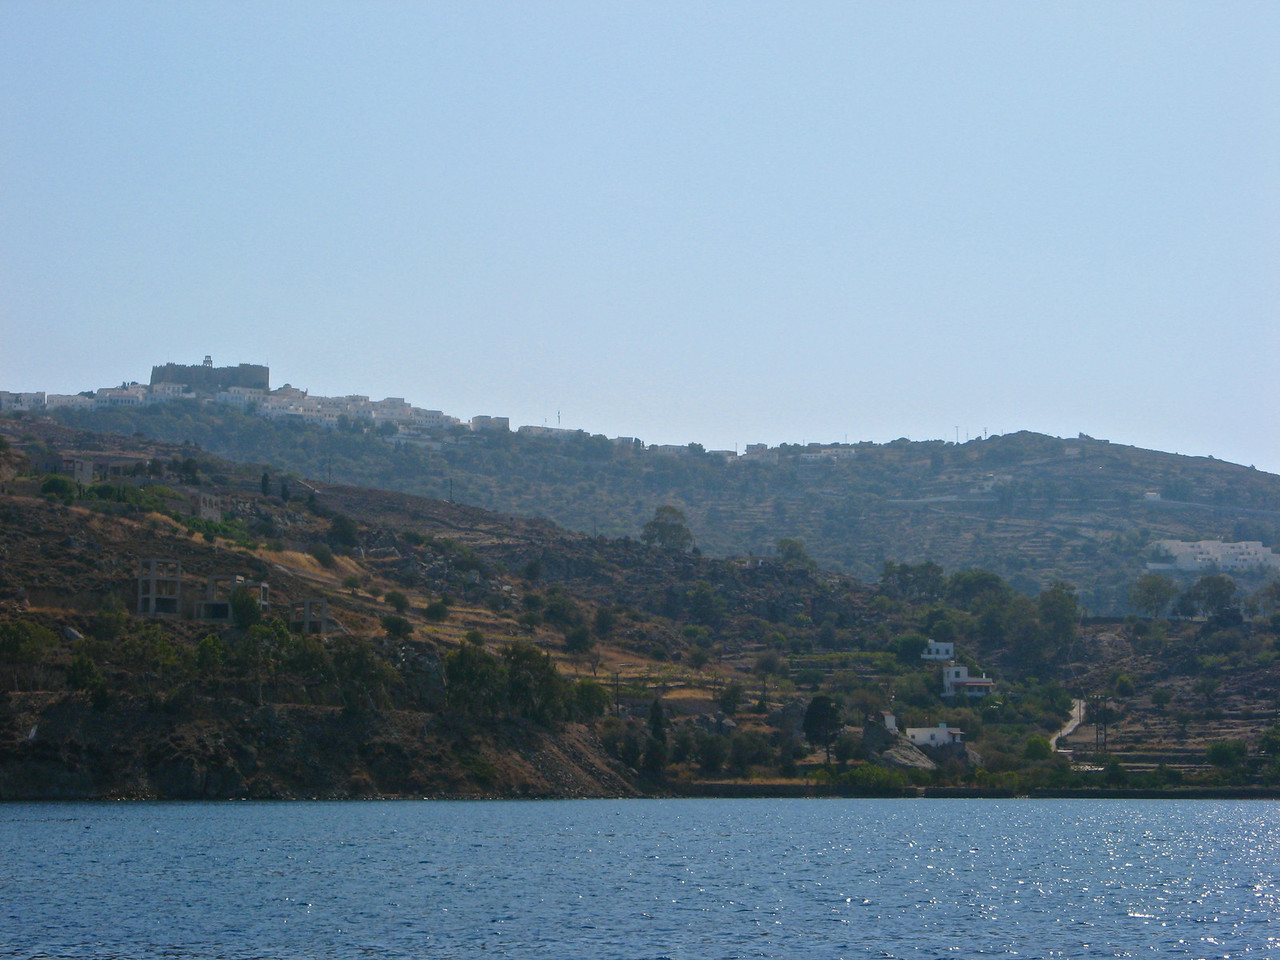 """As we pull into they city of Skala on Patmos, you can see the """"old city"""" Hora at the top of the hill."""